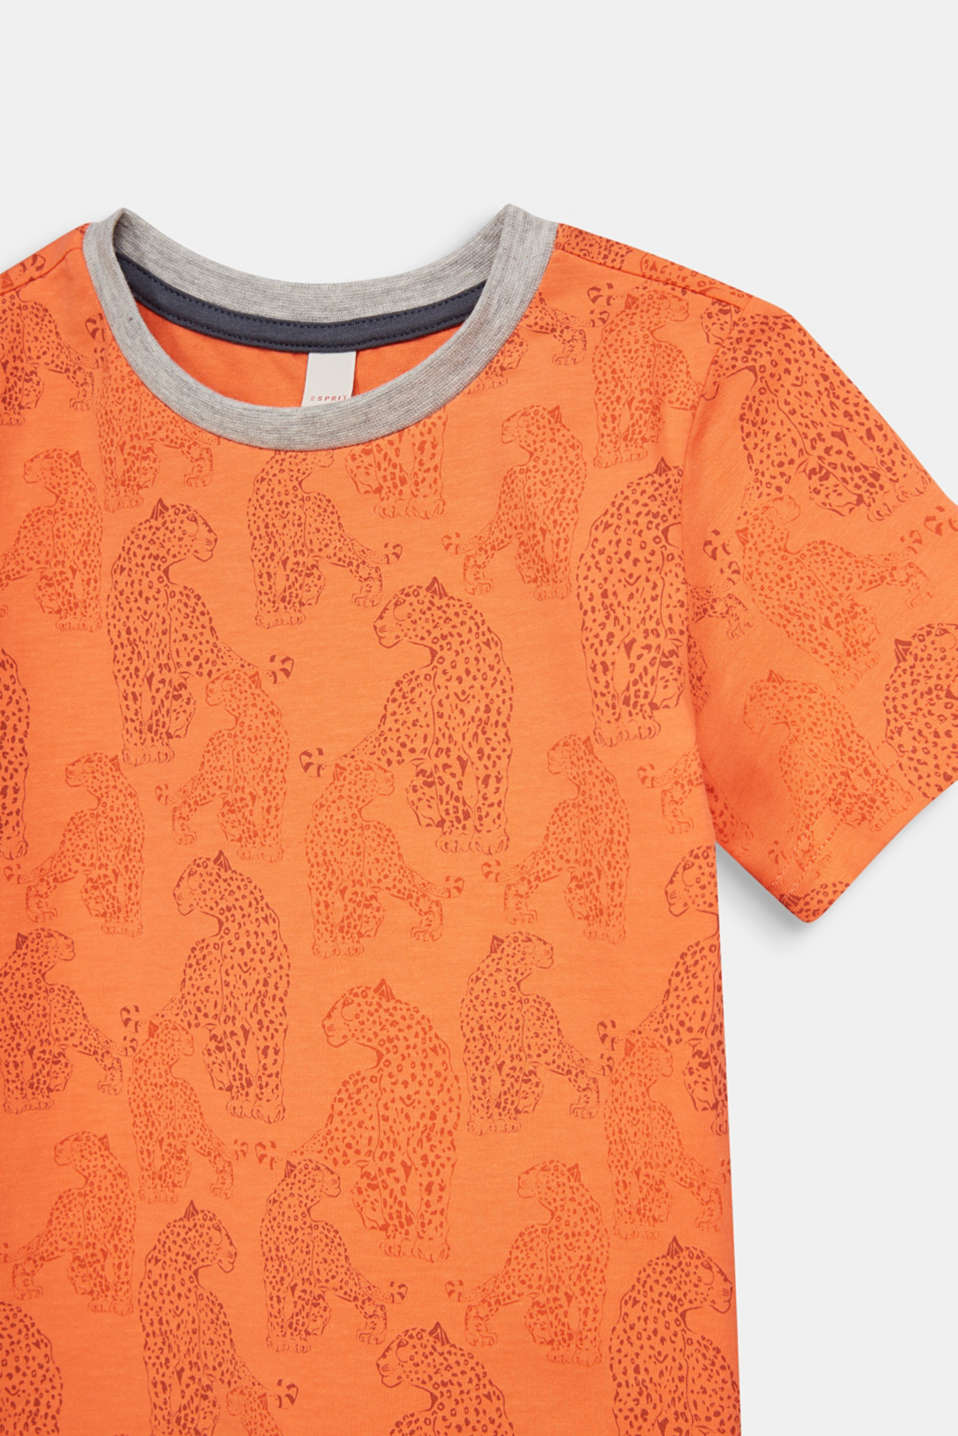 T-shirt with a leopard skin print, SUNNY ORANGE, detail image number 2